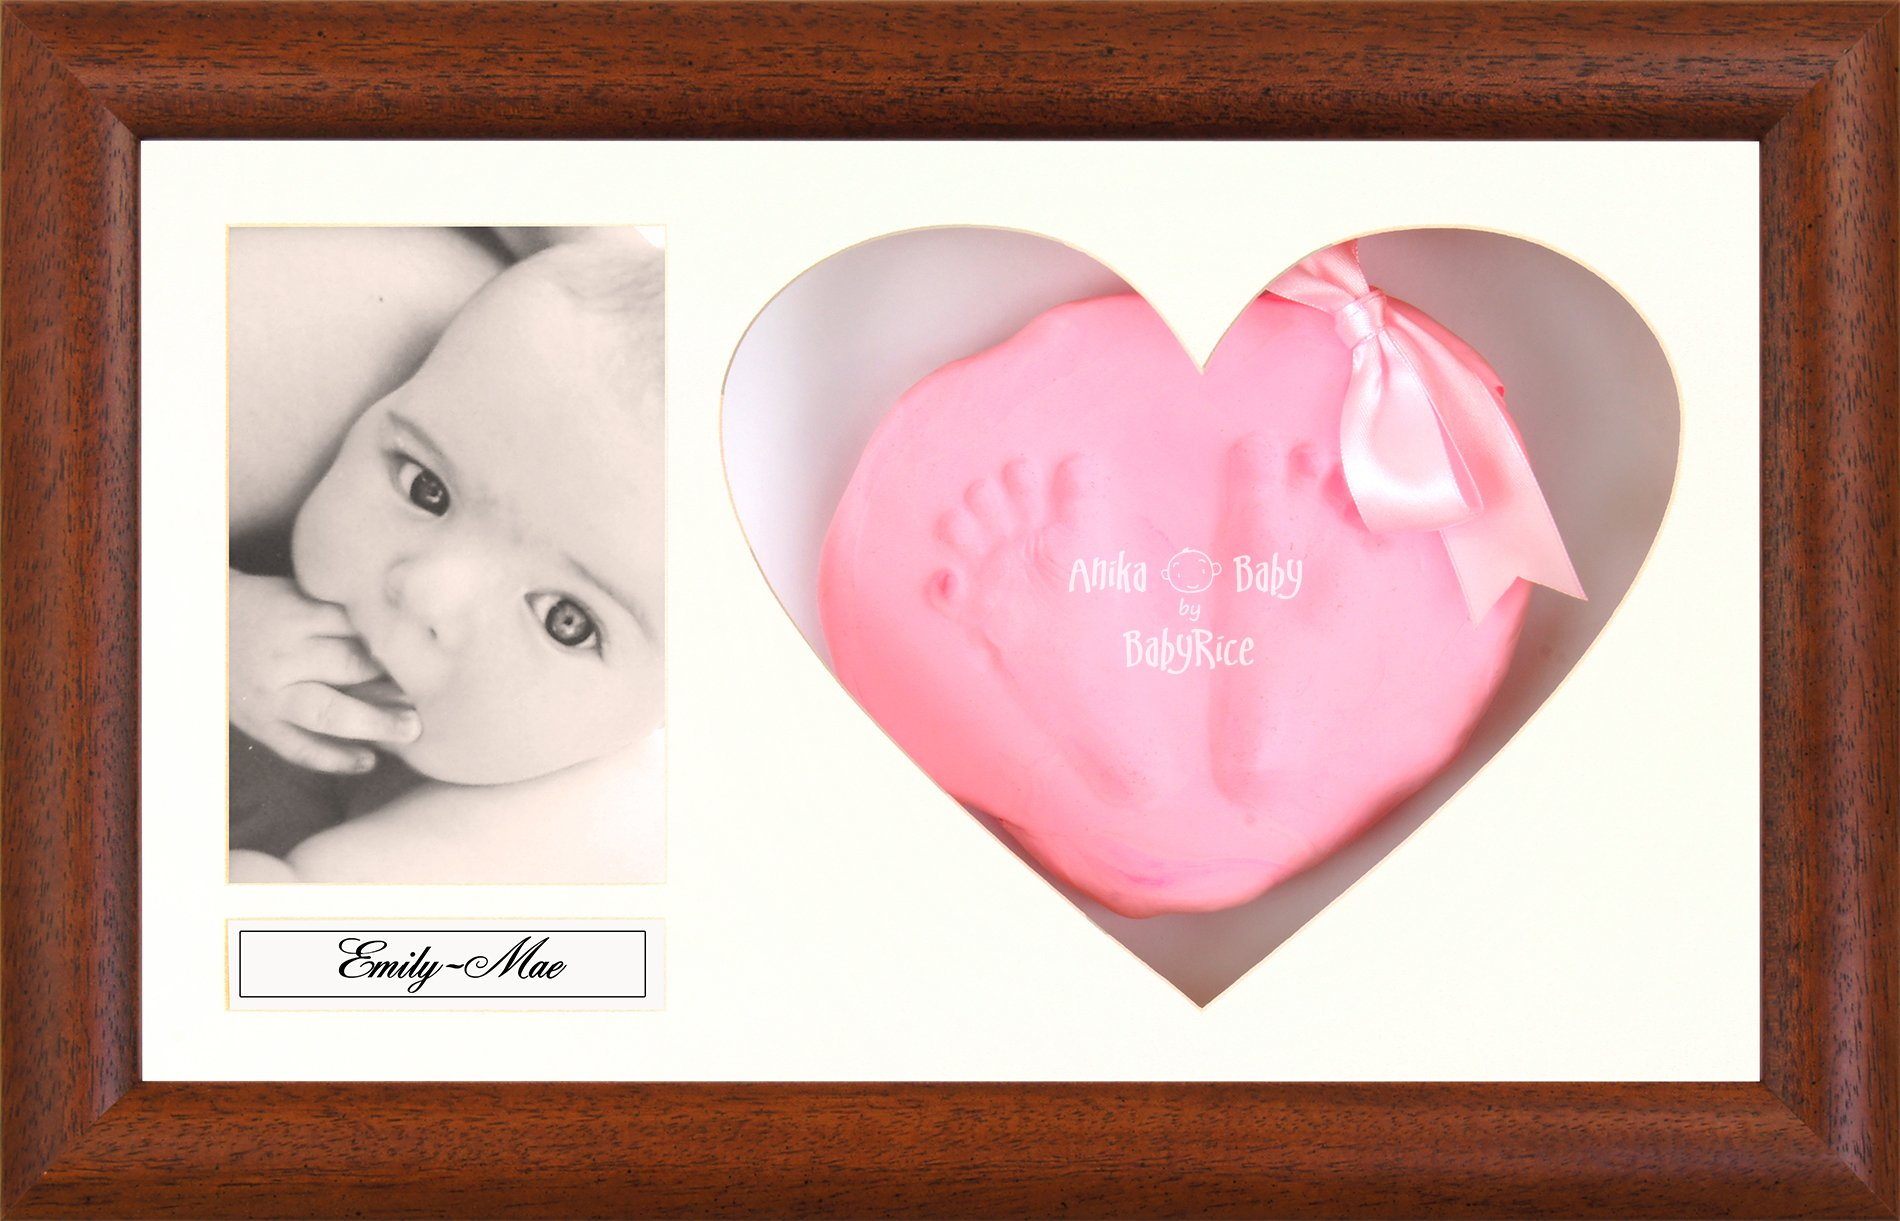 BabyRice Baby Soft Imprint Clay Hand & Footprint Kit / Dark Wood Effect Display Frame with Heart Mount - Choose Clay color (Baby Pink)